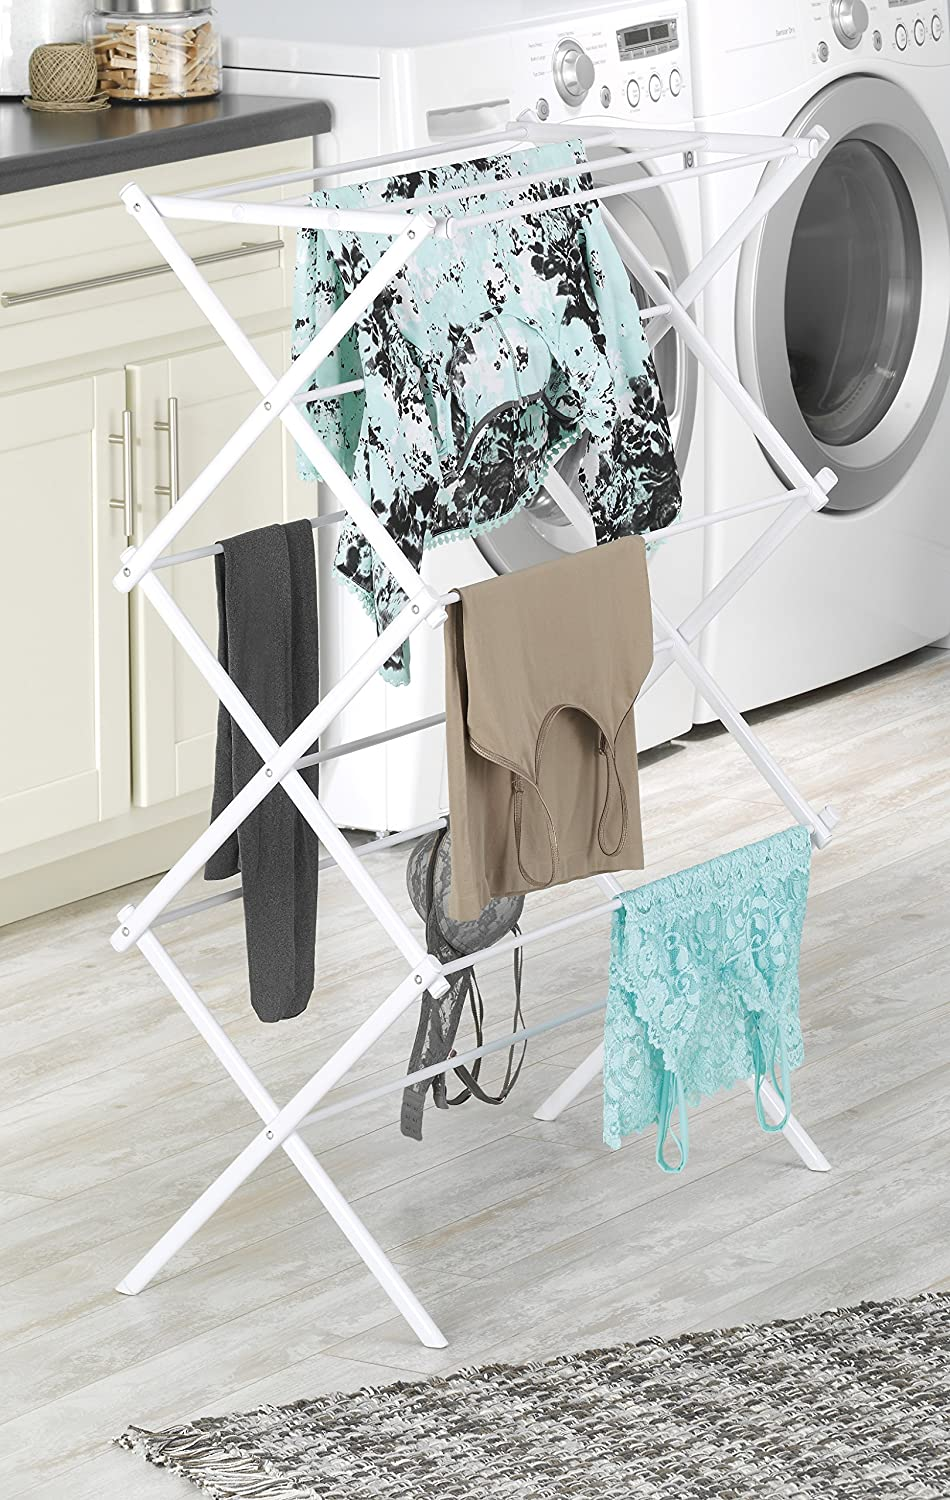 Whitmor 6023 741 Folding Clothes Drying Rack White Ca Home Kitchen